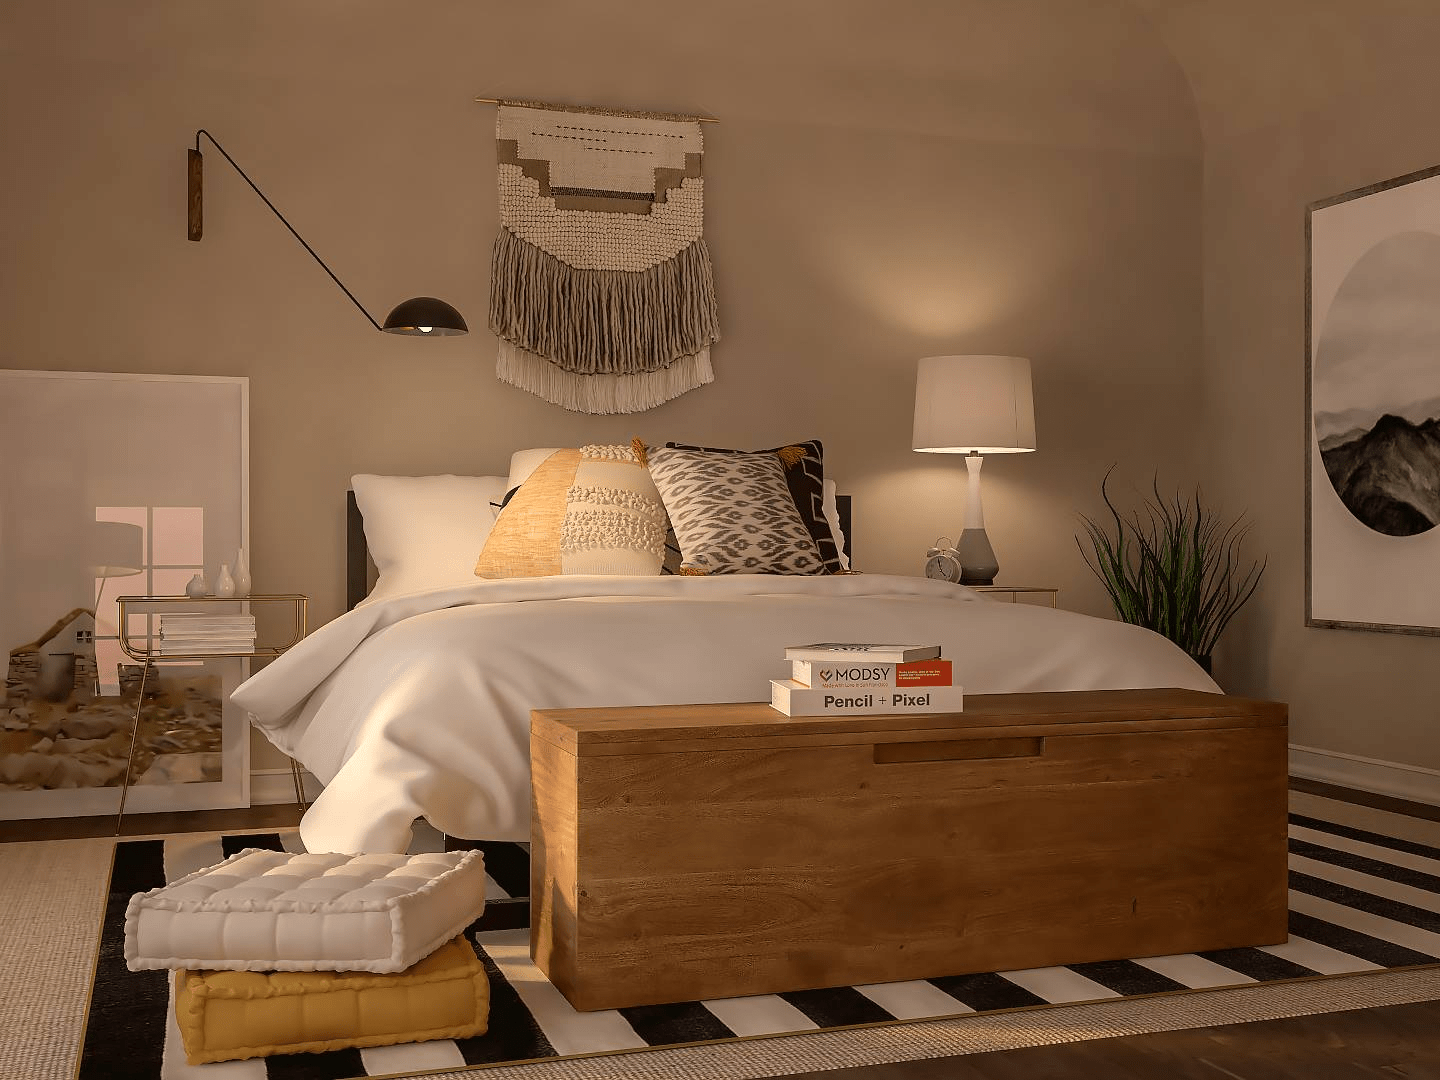 Bedroom Designer Free 8 Online Interior Design Services That Are Free Or